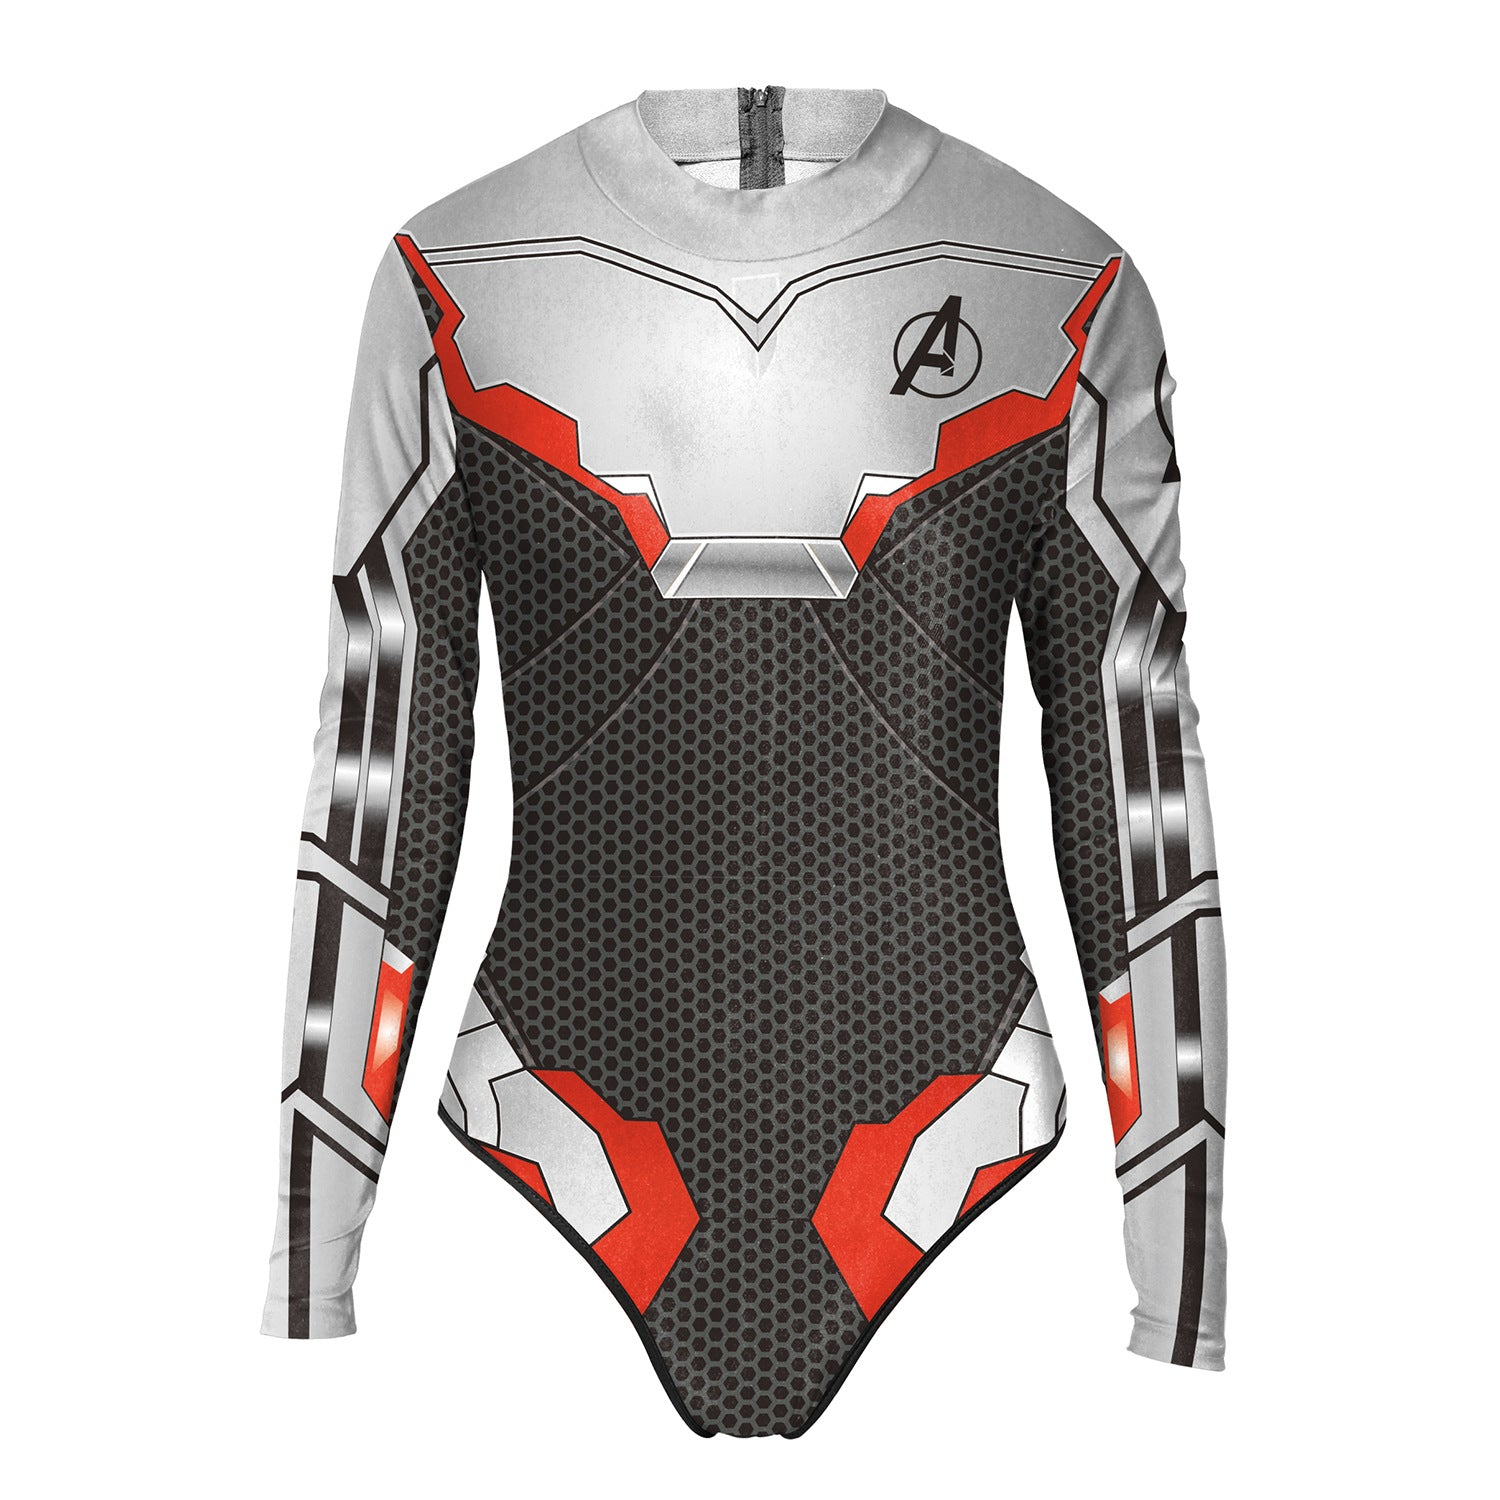 Avengers 4: Endgame Quantum Element Women's one-piece long-sleeved swimsuit